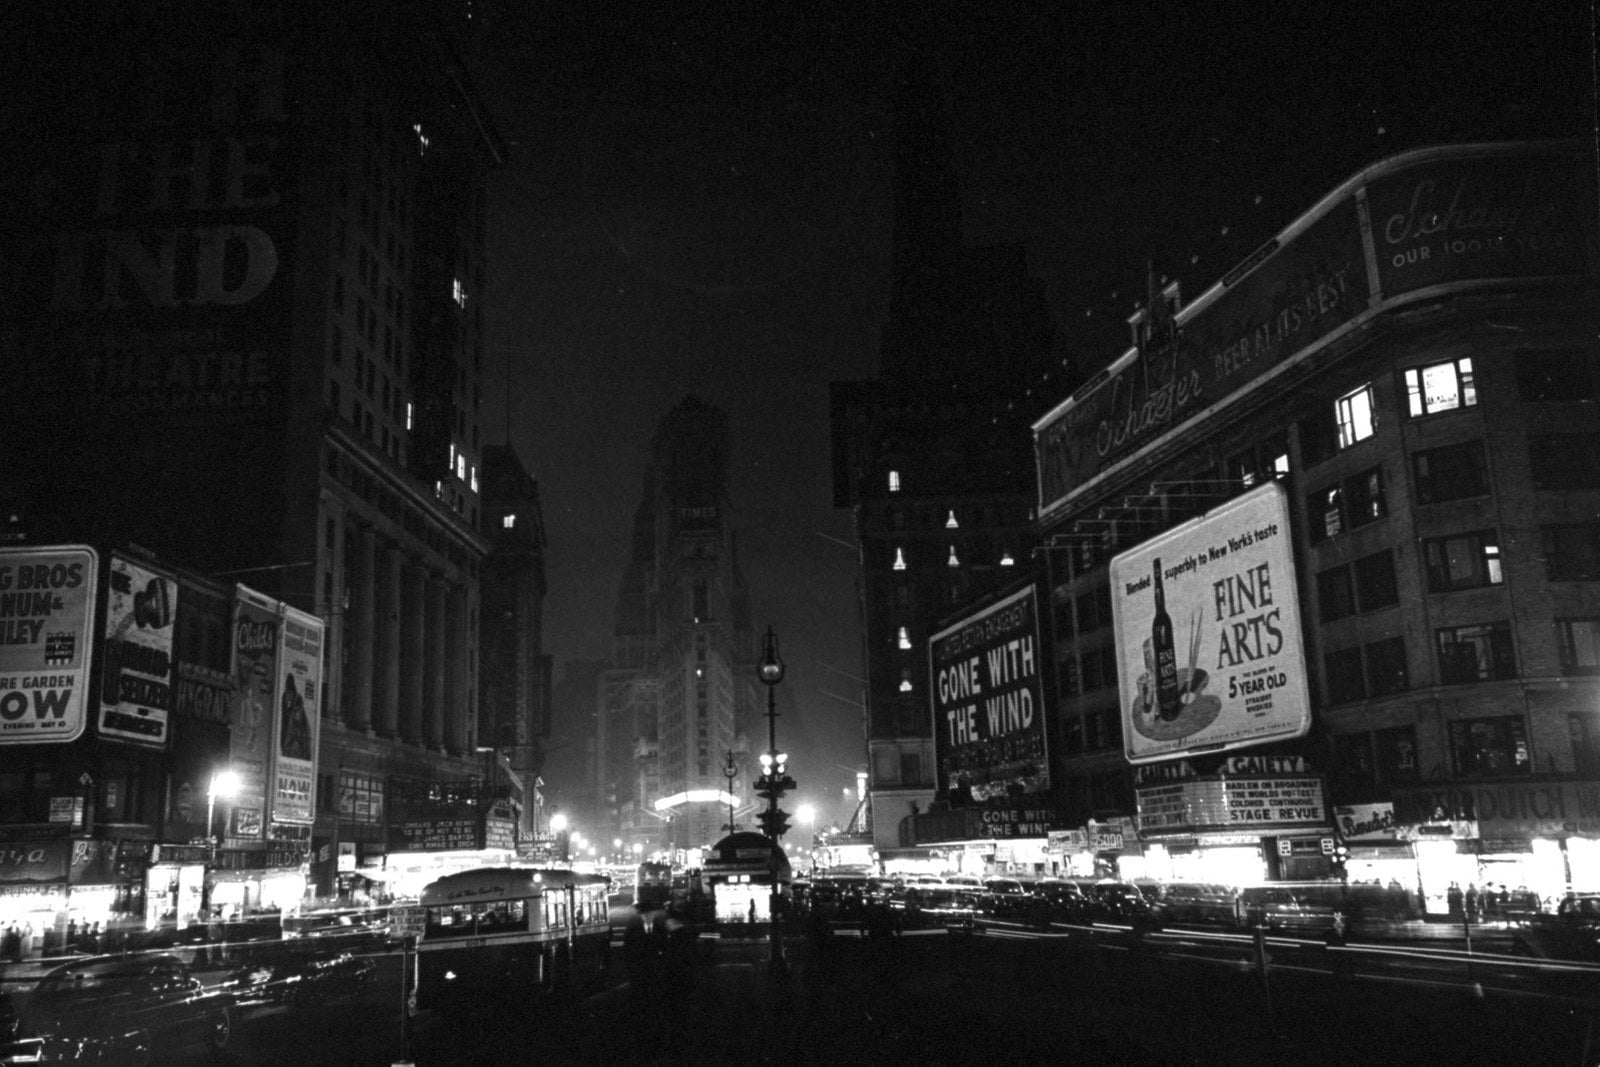 Lights in Times Square are dimmed to conserve energy on March 31, 1942.